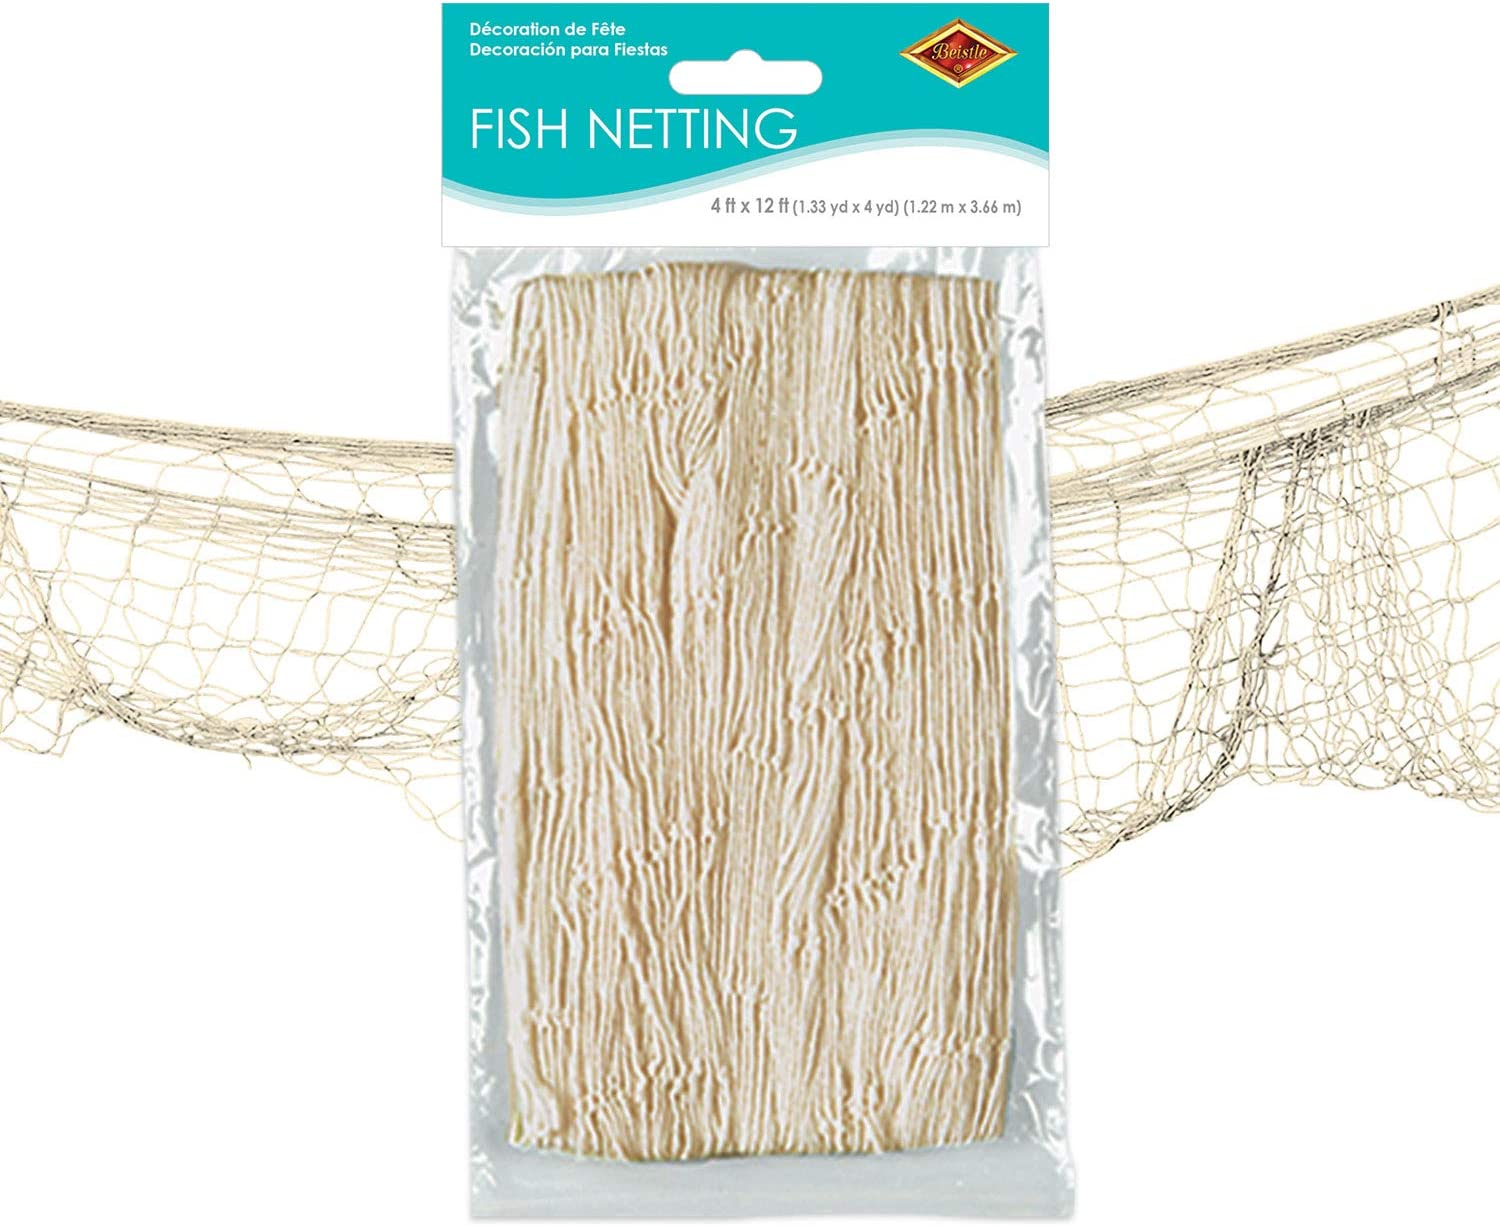 Beistle Fish Netting, Natural Color, 4' x 12'